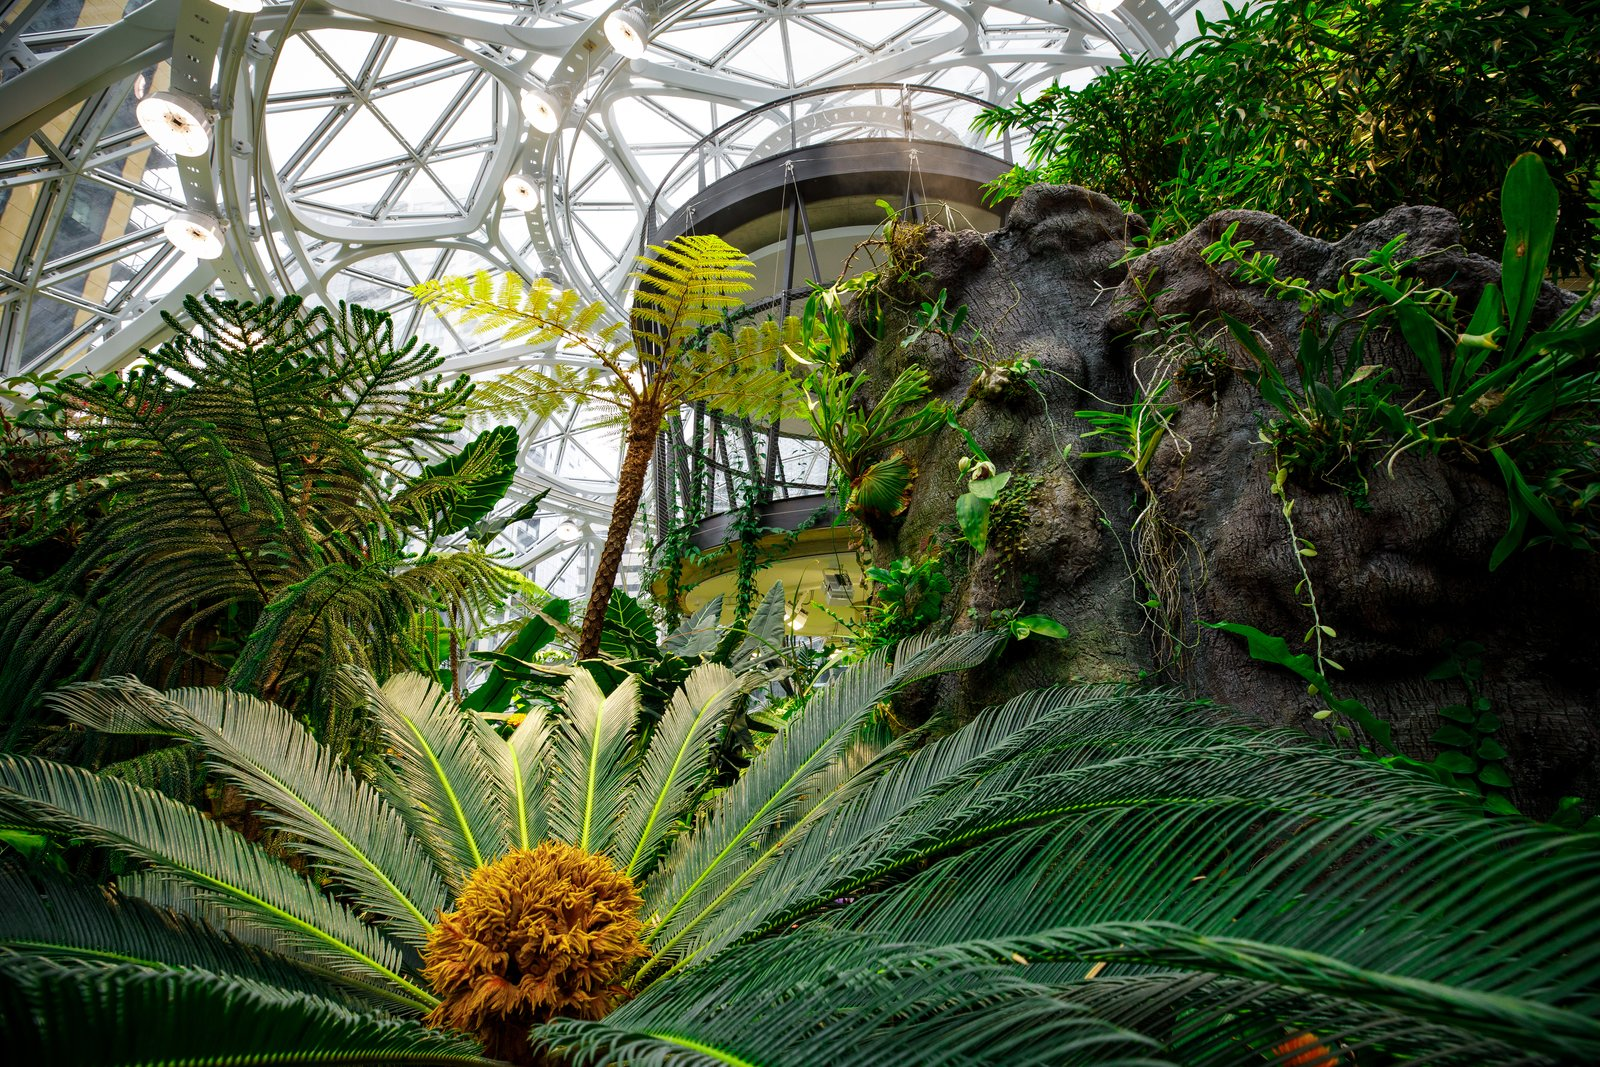 Outdoor, Gardens, and Garden Exposure to nature is proven to put people at ease and help them think more creatively, the spheres are designed to help Amazon employees feel and work their best.  Photo 8 of 9 in Meet Downtown Seattle's Newest Landmark: The Amazon Spheres